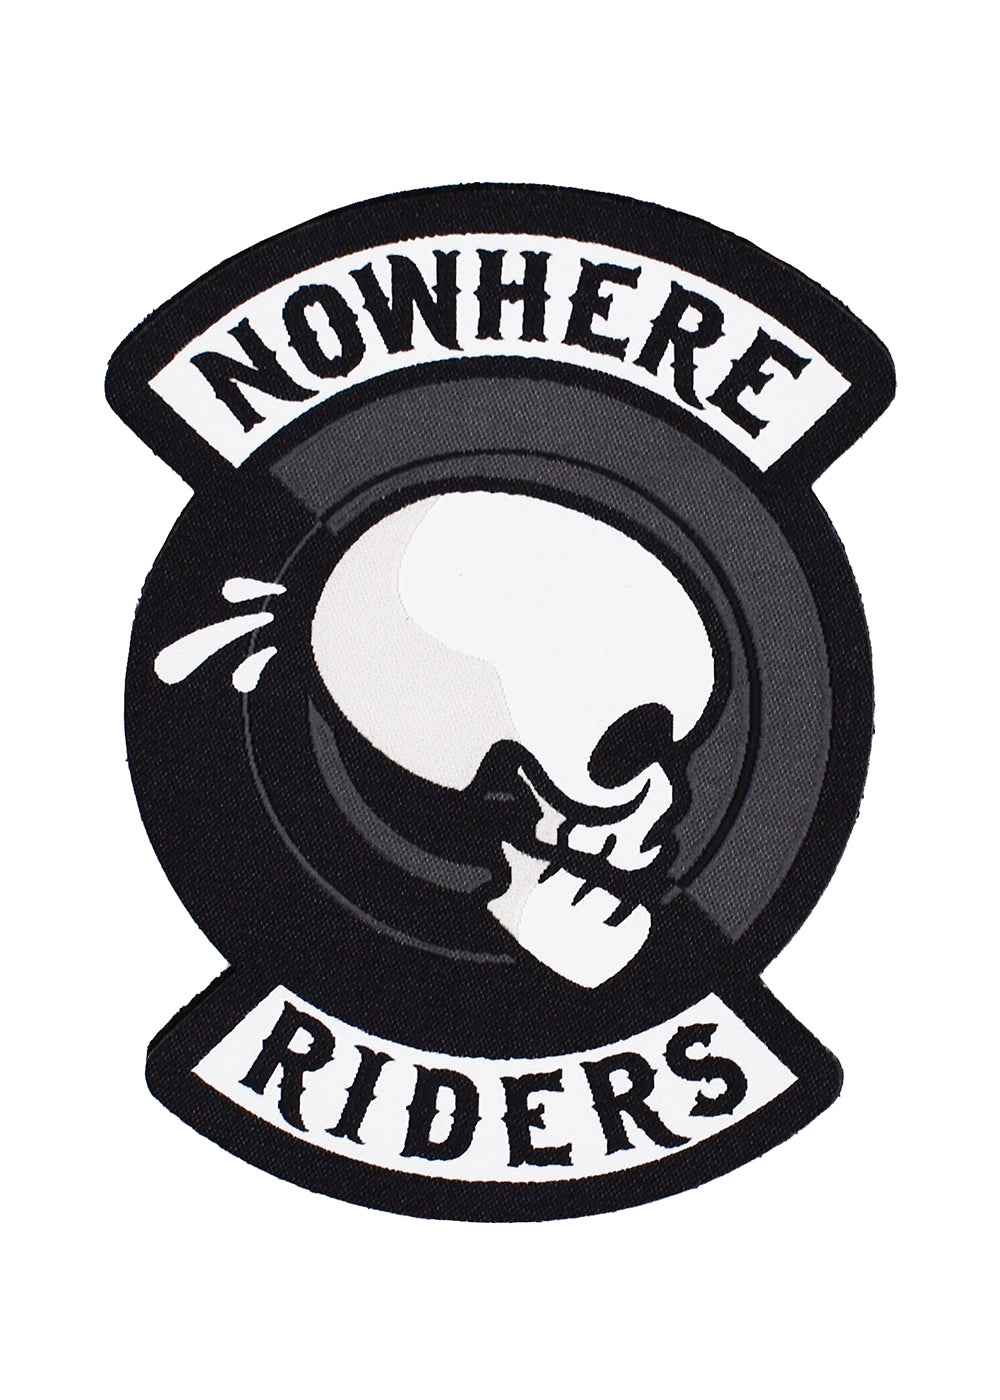 Woven 'Nowhere Riders' Skull Velcro Patch